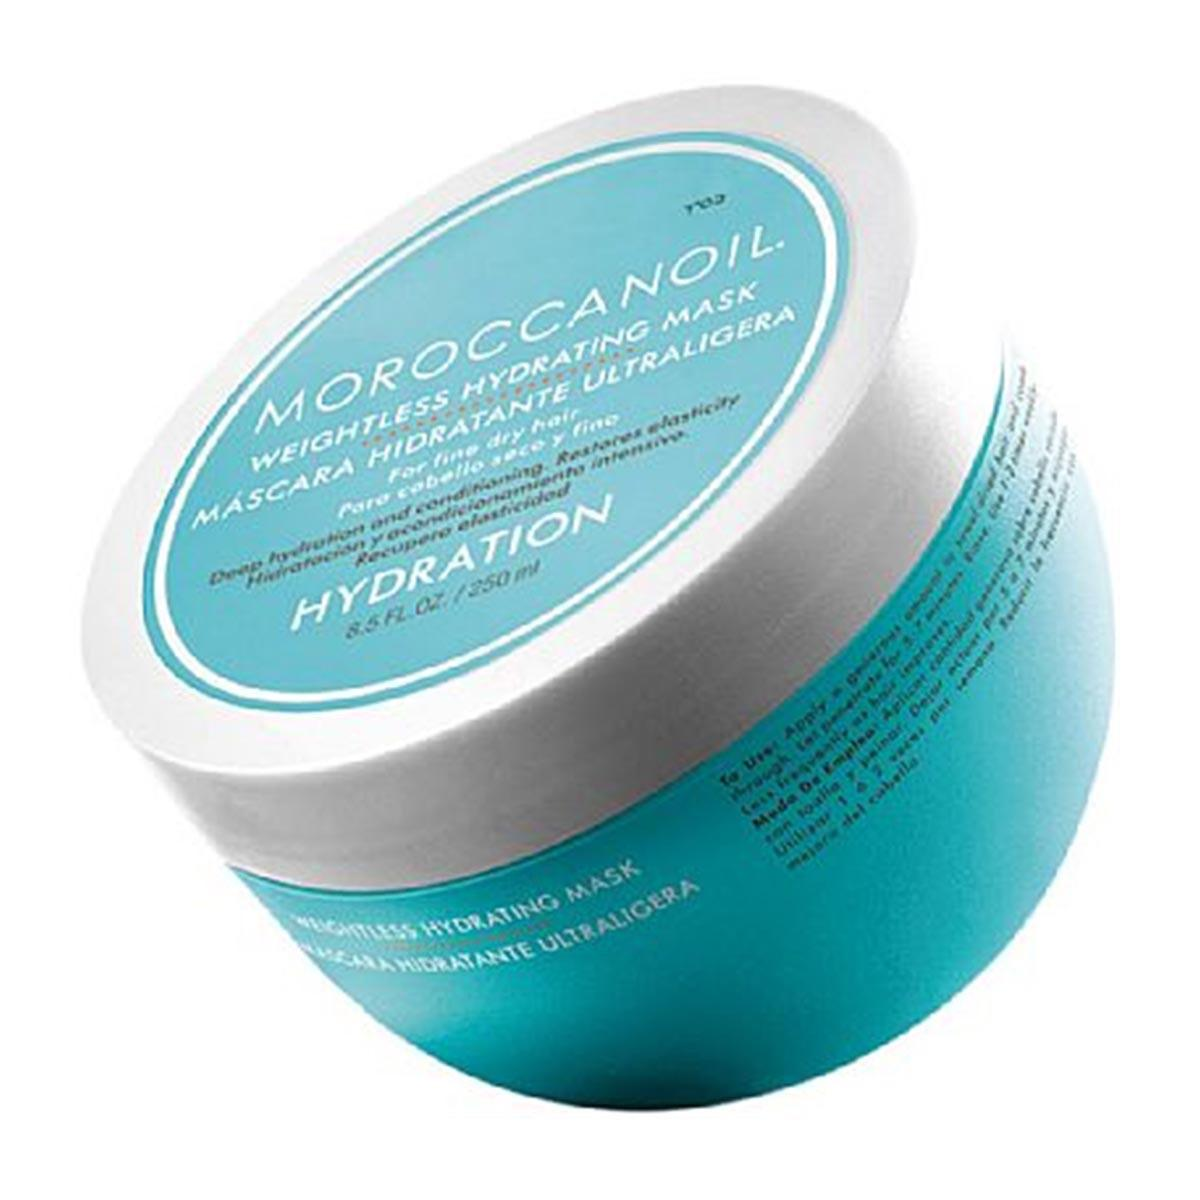 Moroccanoil fragrances Hydration Weightless Hydrating Mask 250ml